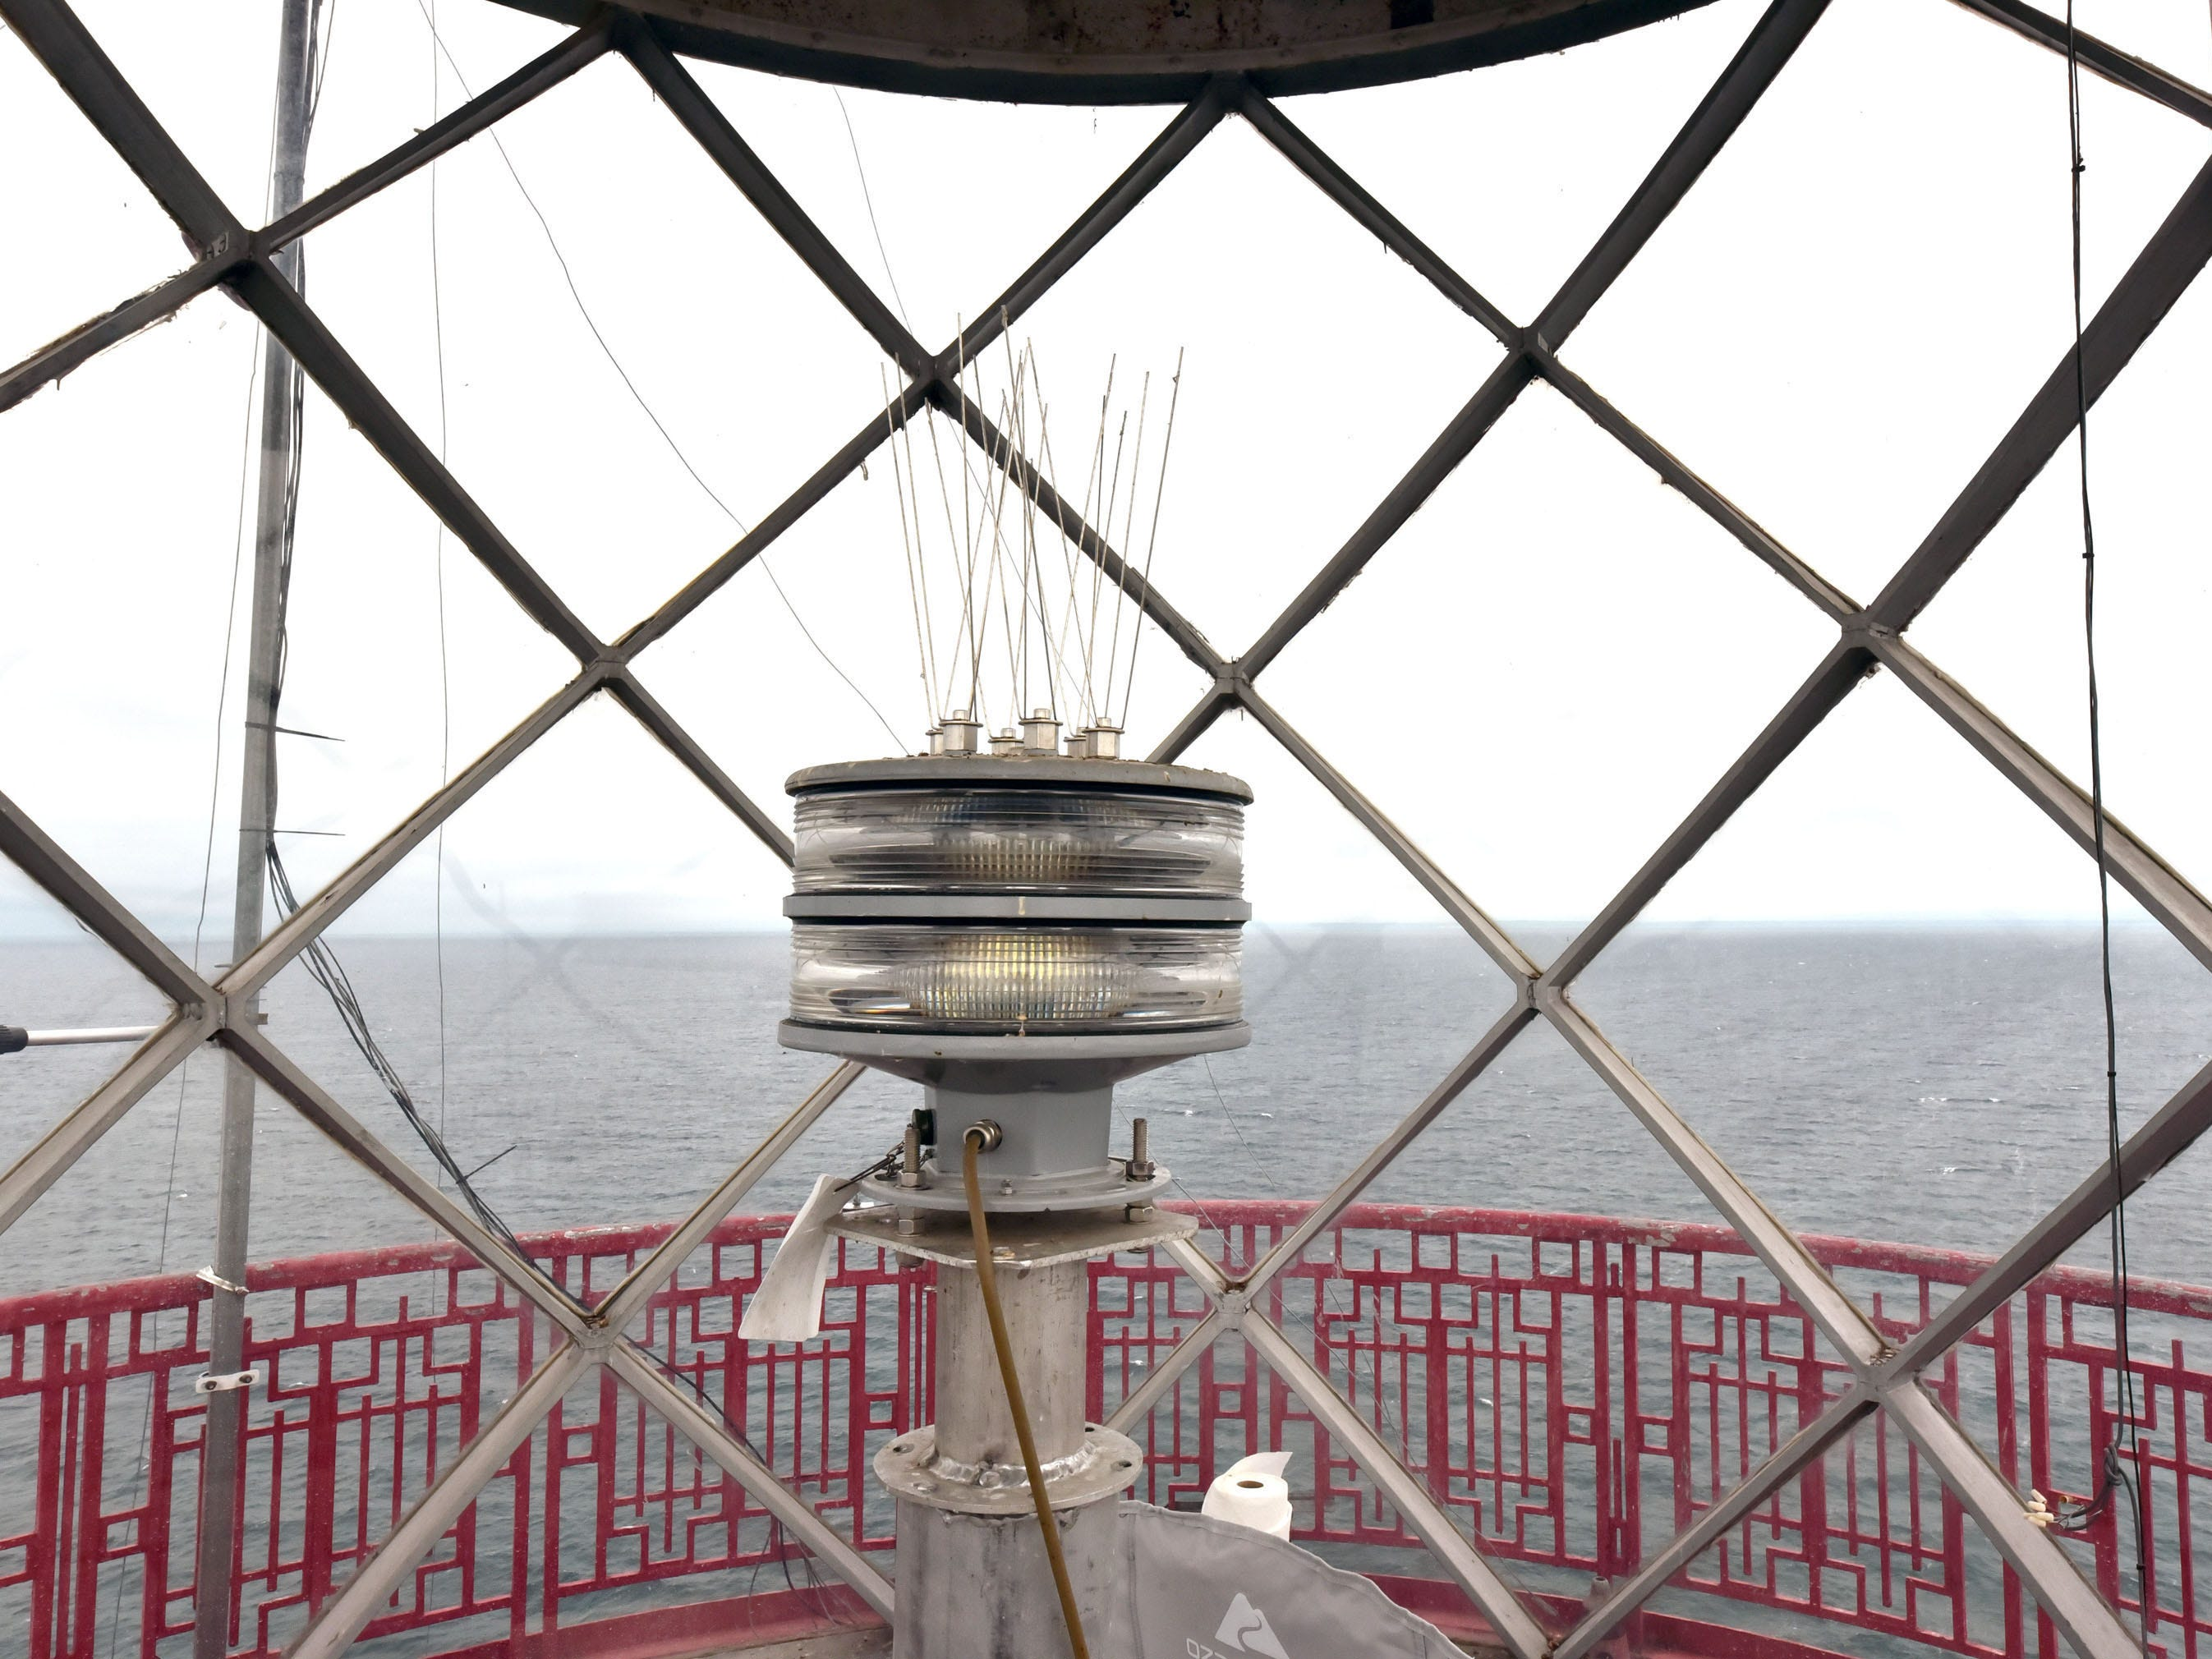 The rotating light in the tower at the White Shoal Lighthouse can throw a beam 28 miles, and is maintained once a year by the U.S. Coast Guard. Sunday, Sept. 2, 2018.